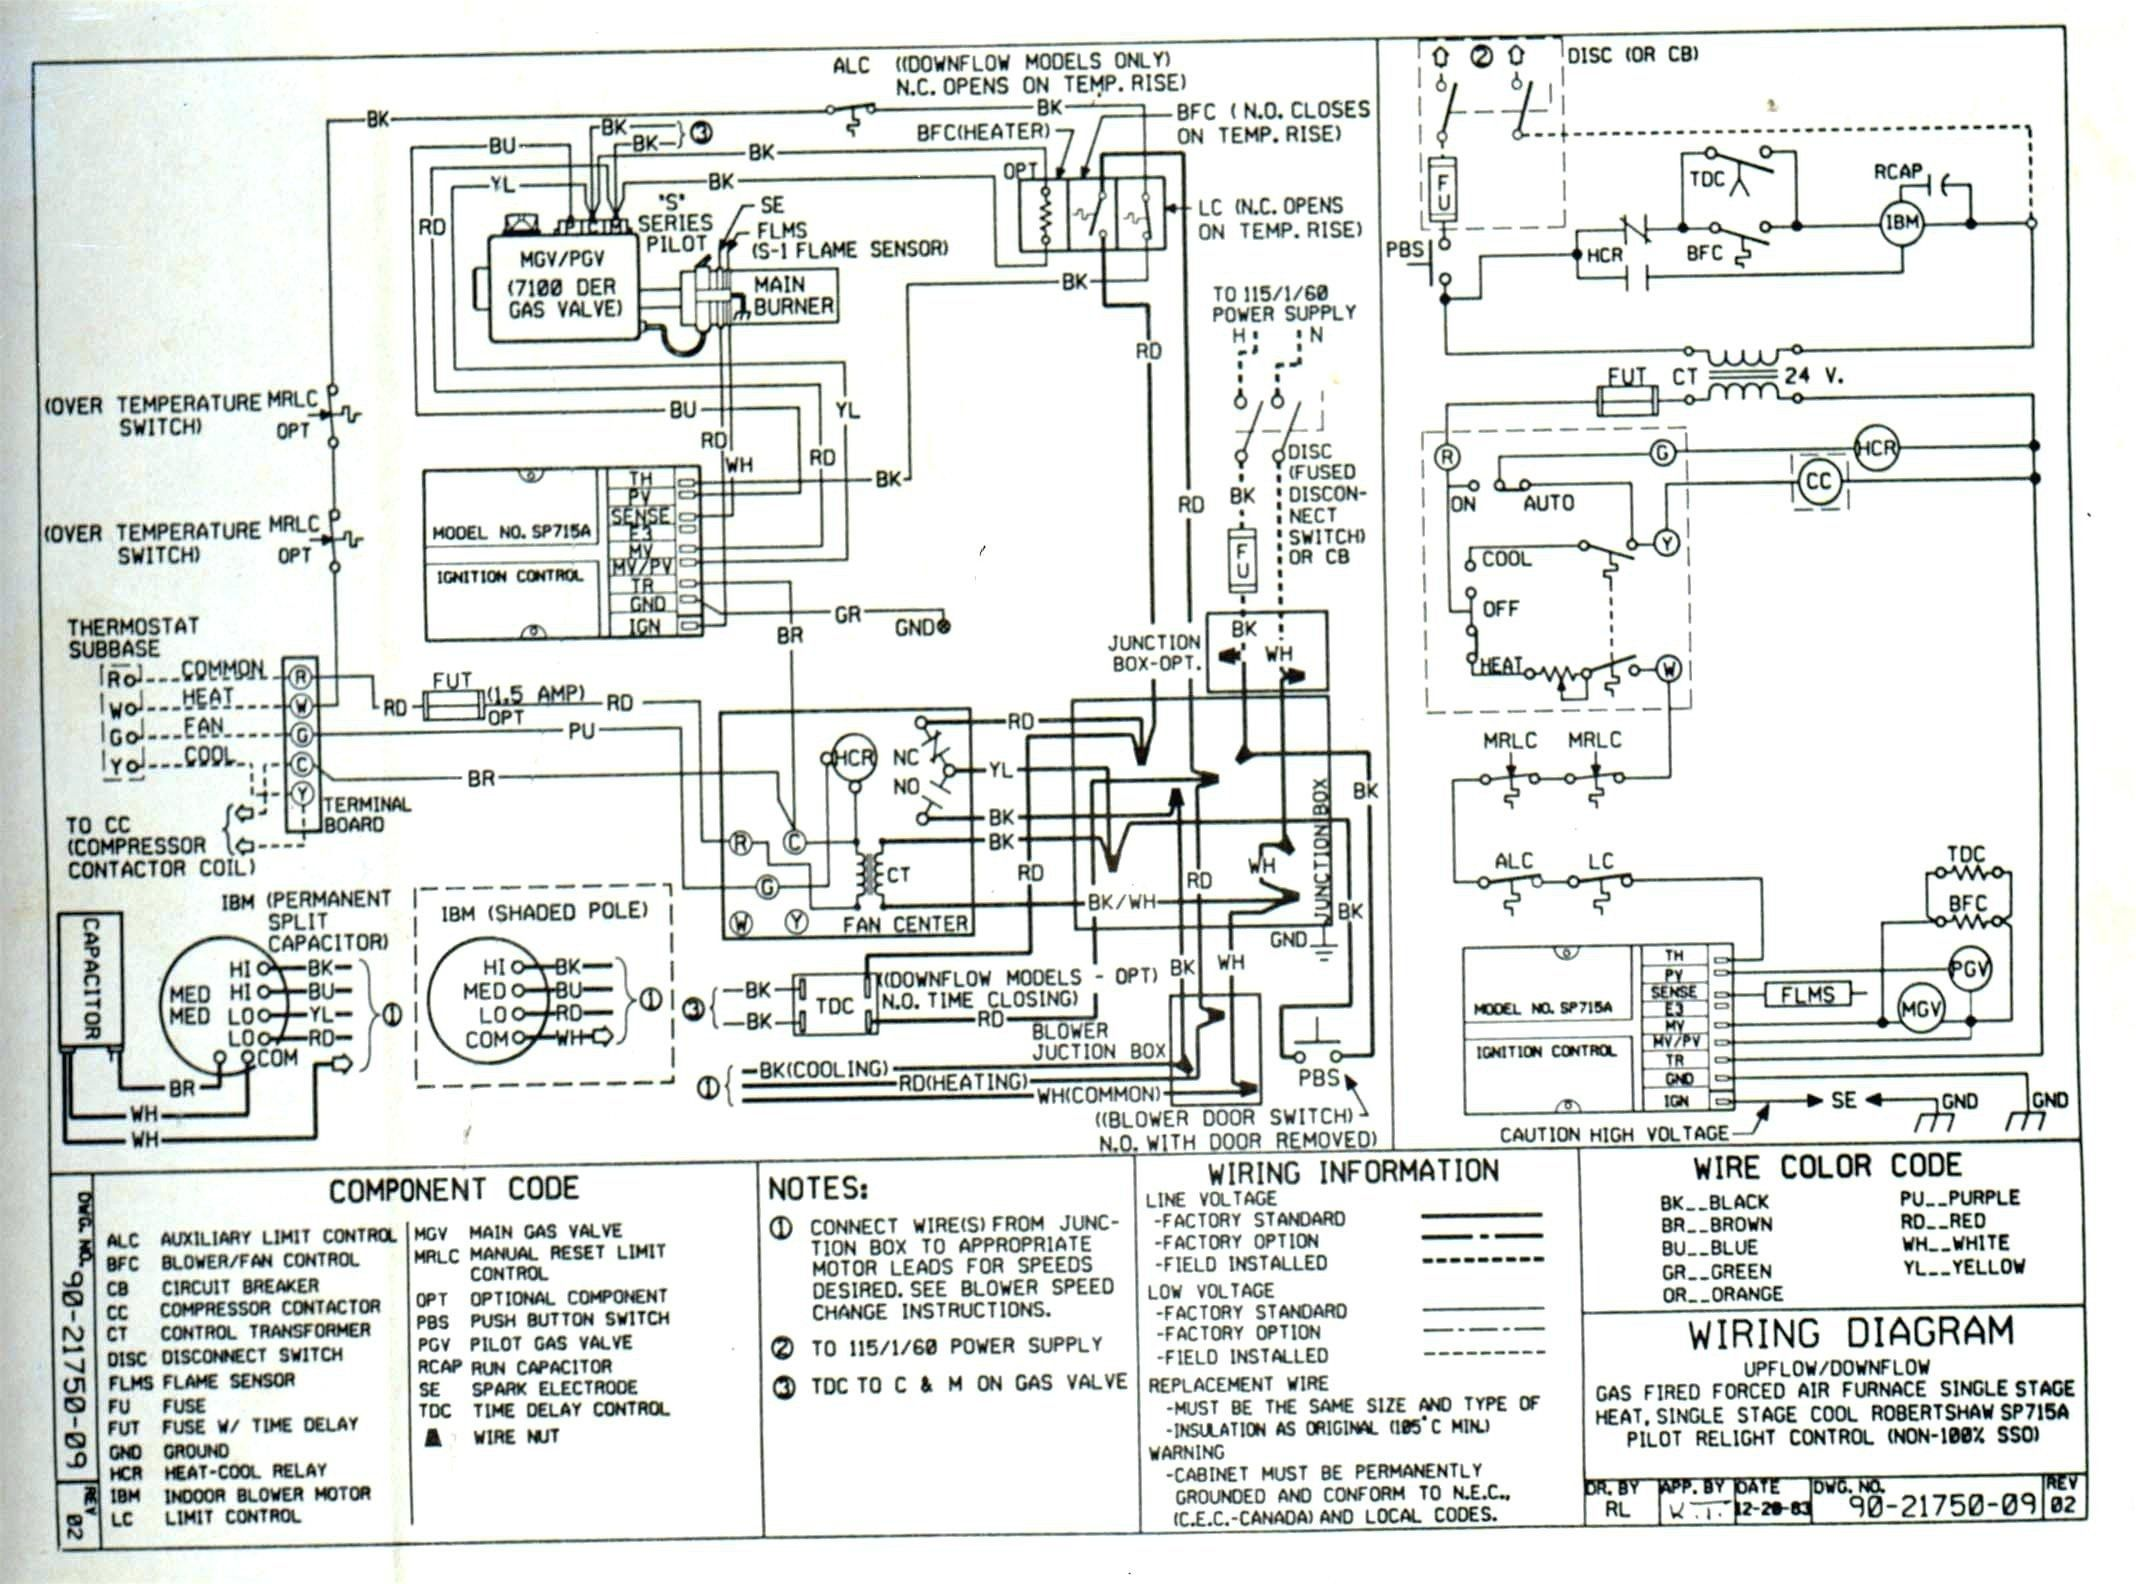 medium resolution of trane bwv724a100d1 air handler wiring diagram simple wiring diagrams trane twe air handler wiring diagram trane bwv724a100d1 air handler wiring diagram